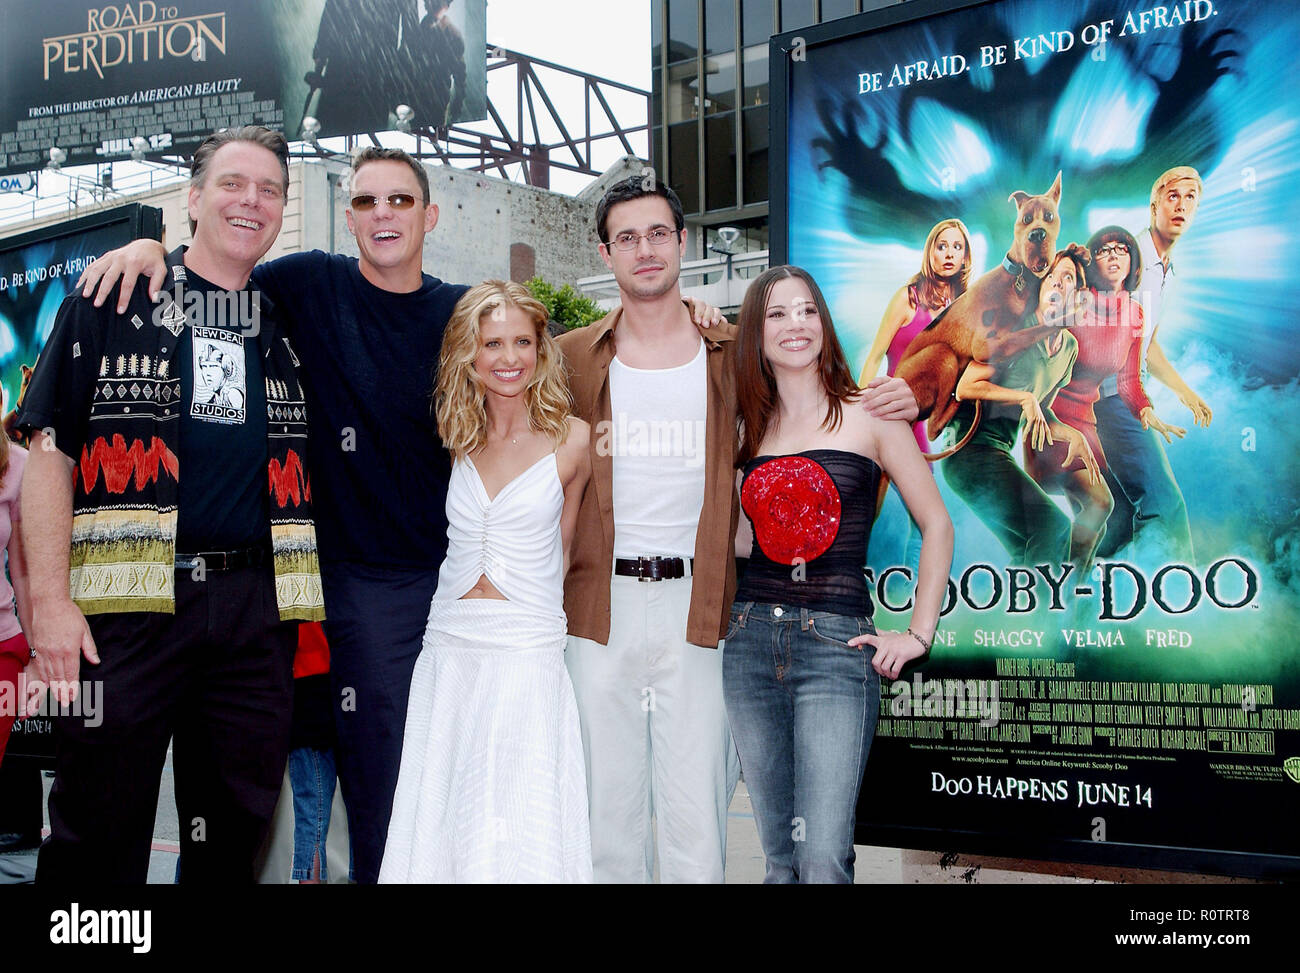 The Cast Of Scooby Doo Posing At The Premiere Of Scooby Doo At The Chinese Theatre In Los Angeles June 8 2002 Scoobydoo C Stock Photo Alamy